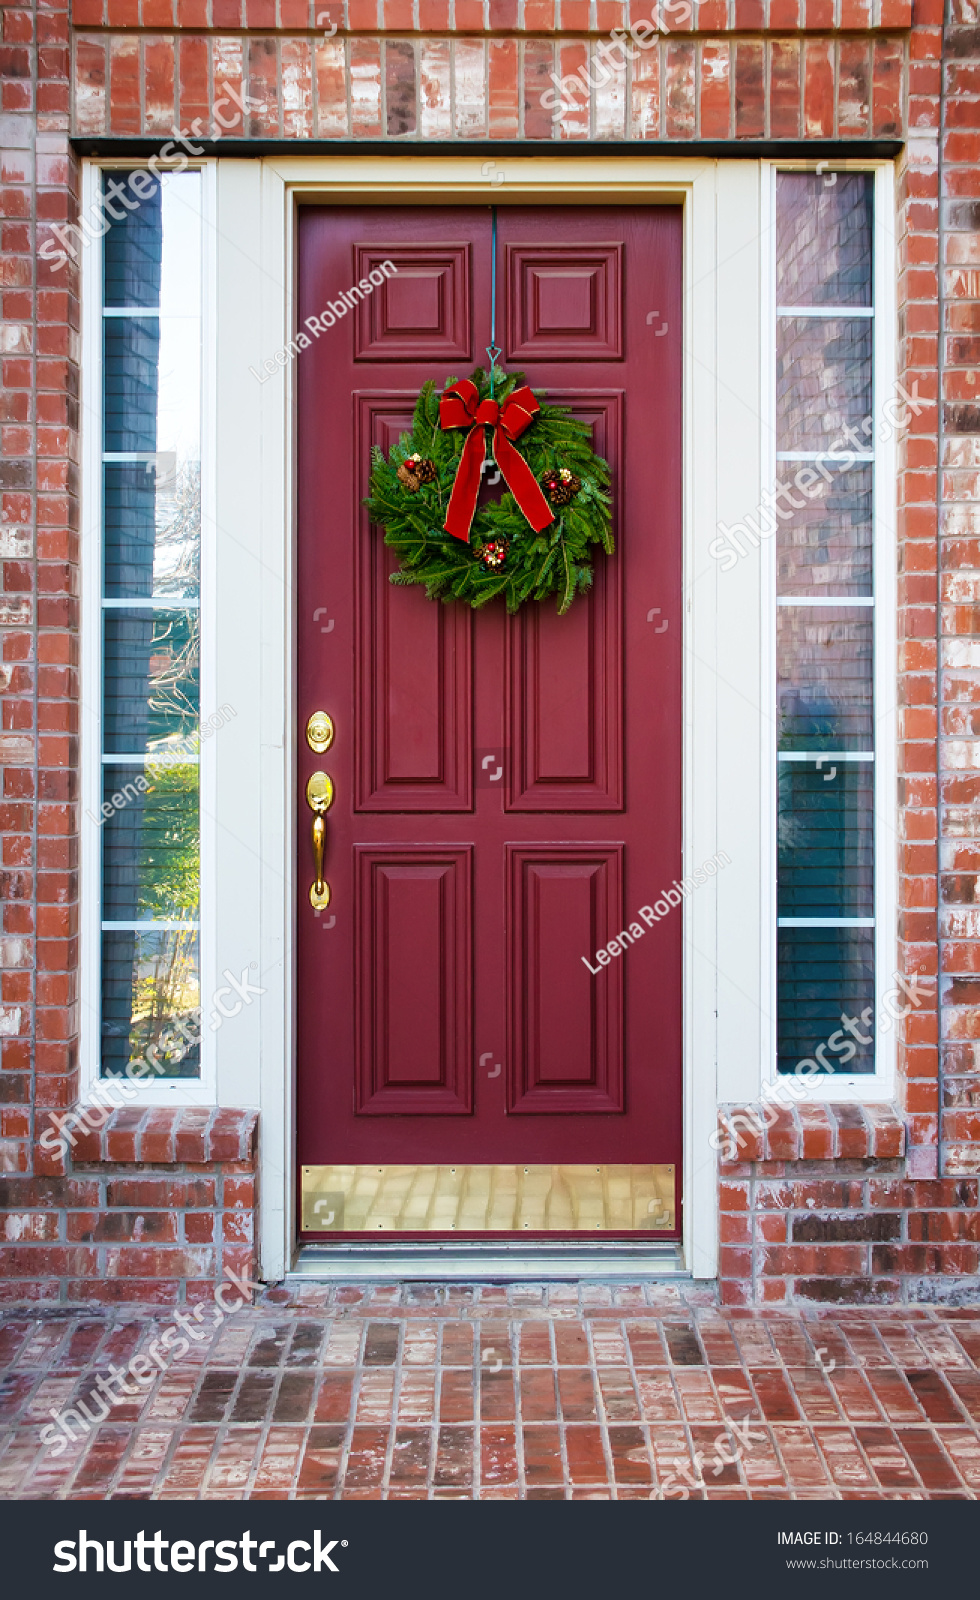 christmas wreath hanging on a red wooden door of a brick house stock photo 164844680 shutterstock. Black Bedroom Furniture Sets. Home Design Ideas